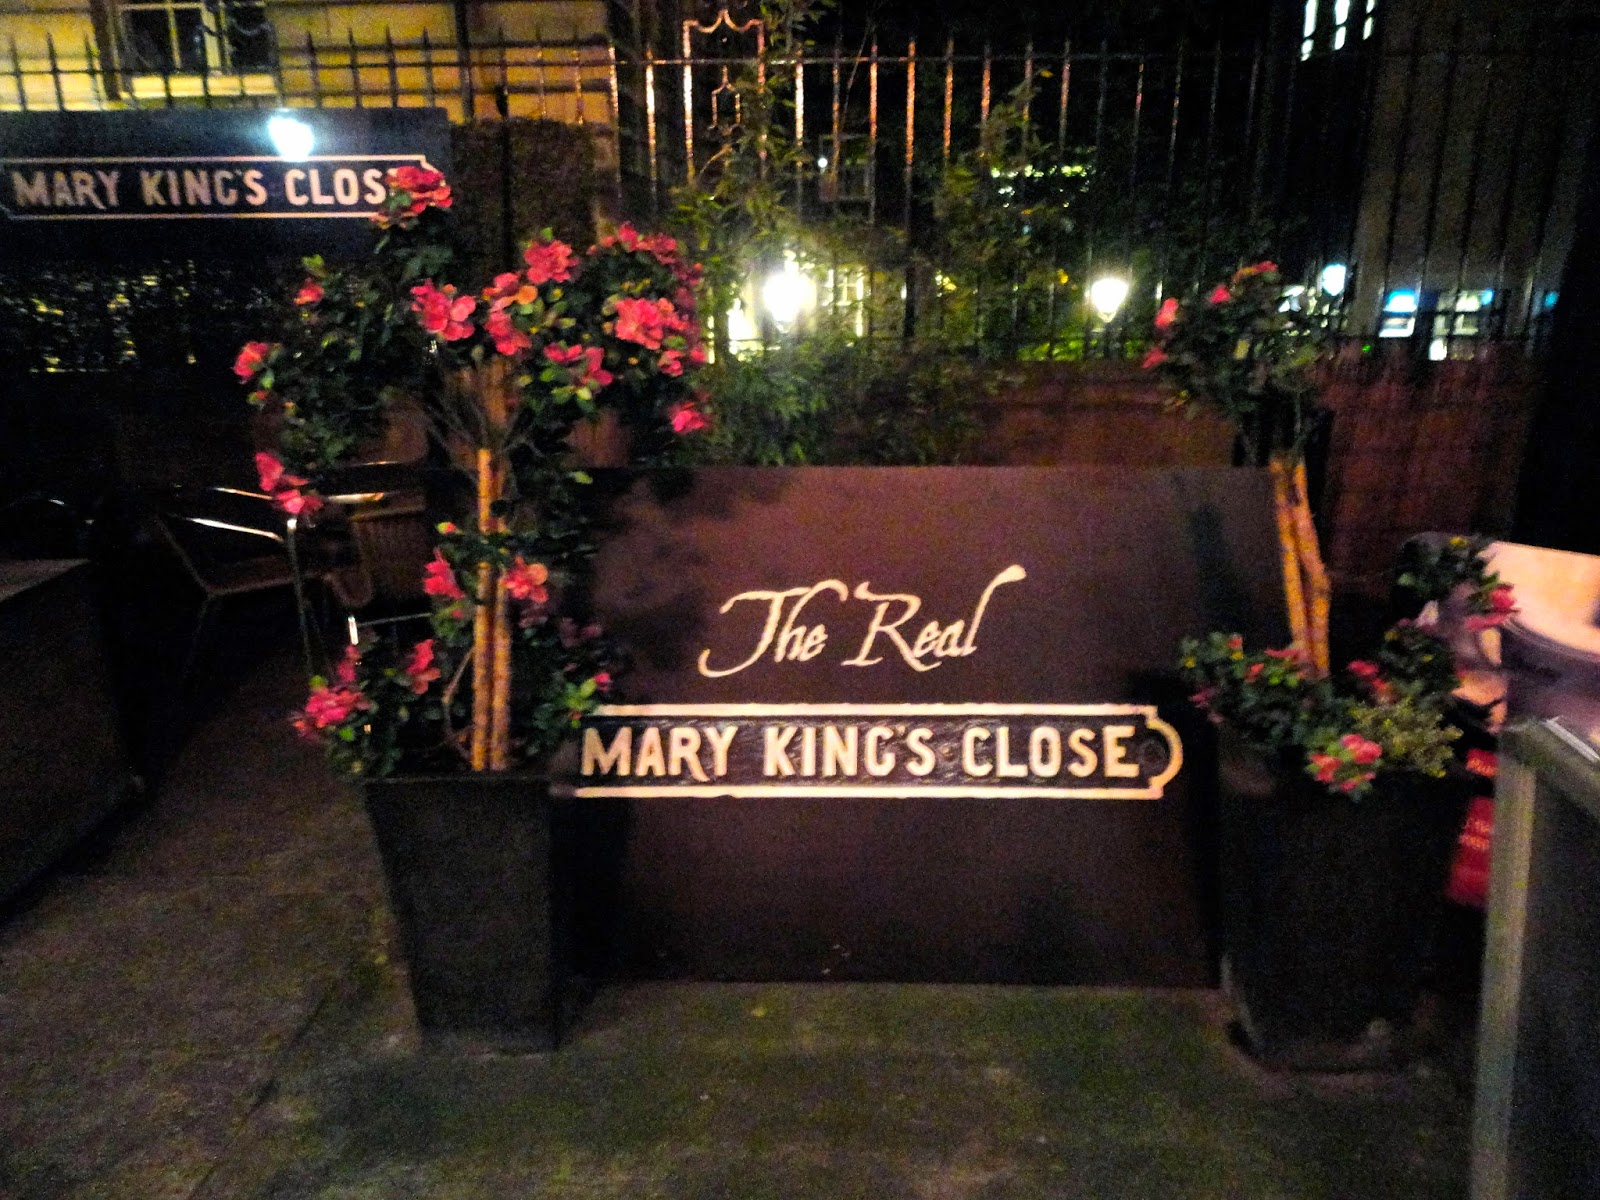 The Real Mary King's Close sign in Edinburgh